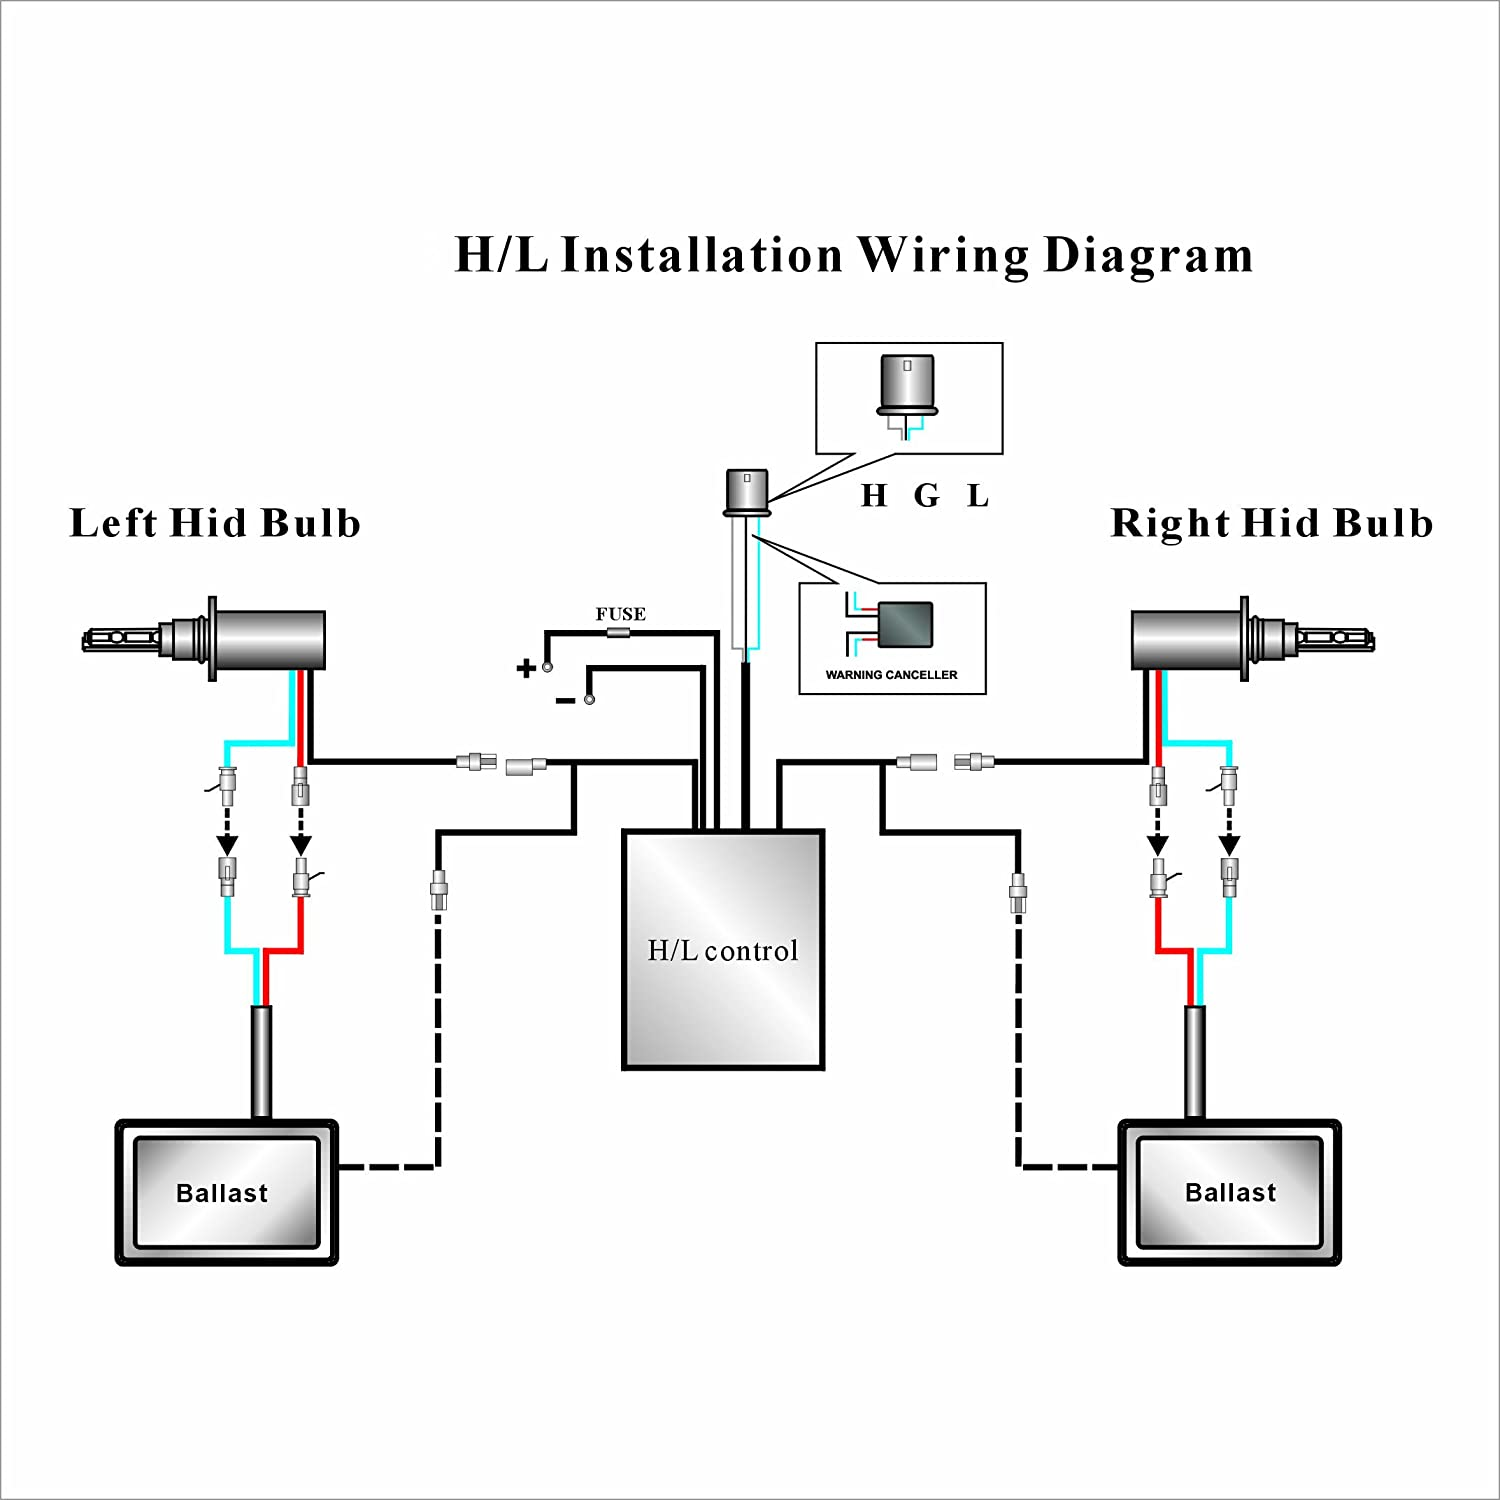 h4 hid wiring diagram   21 wiring diagram images